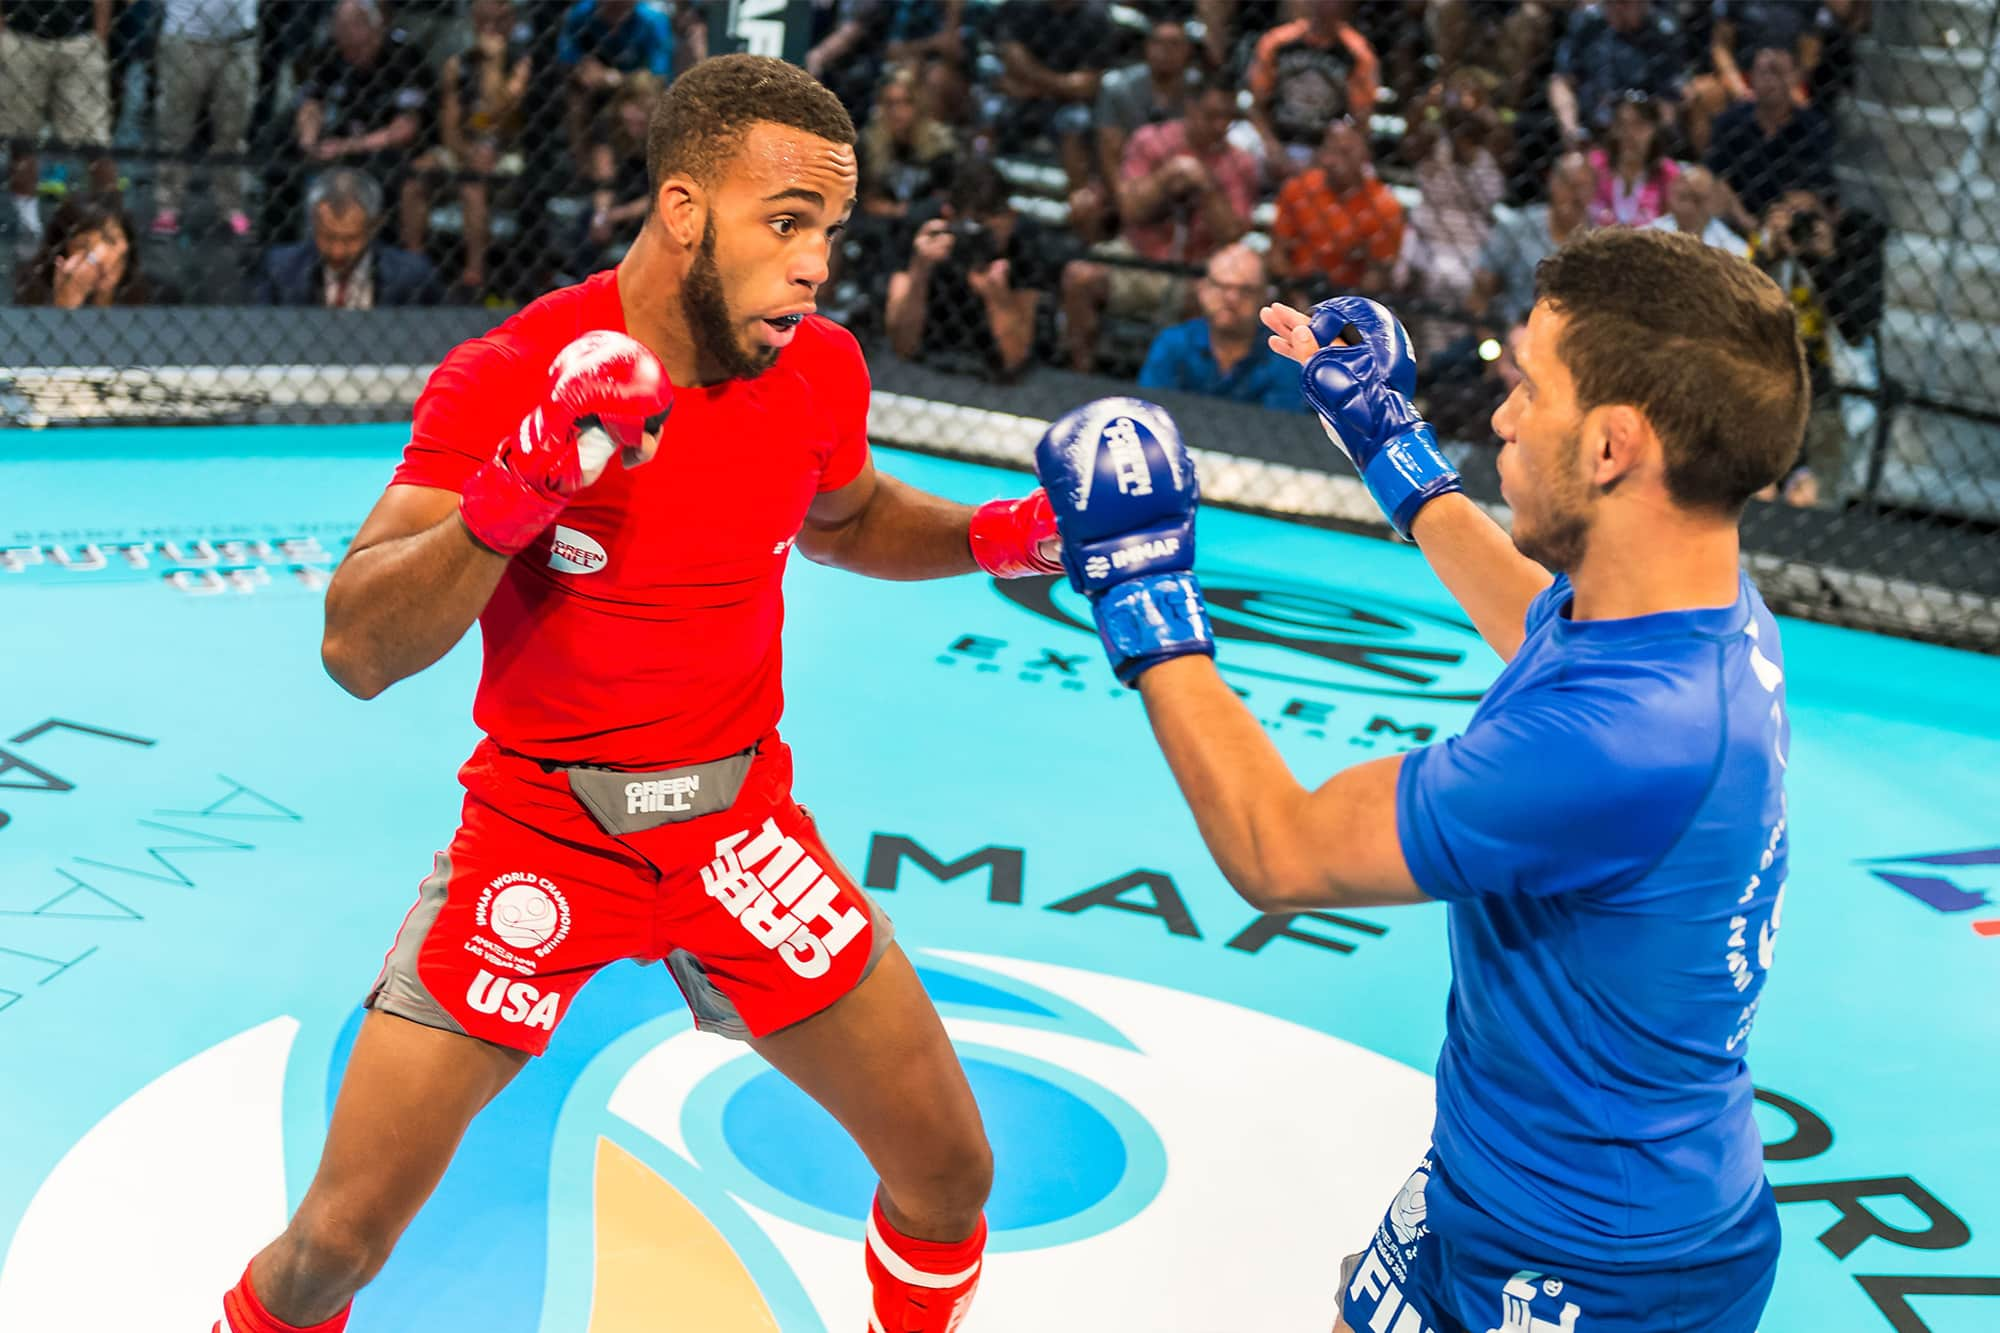 IMMAF US standout David Evans blazes a trail in the pros